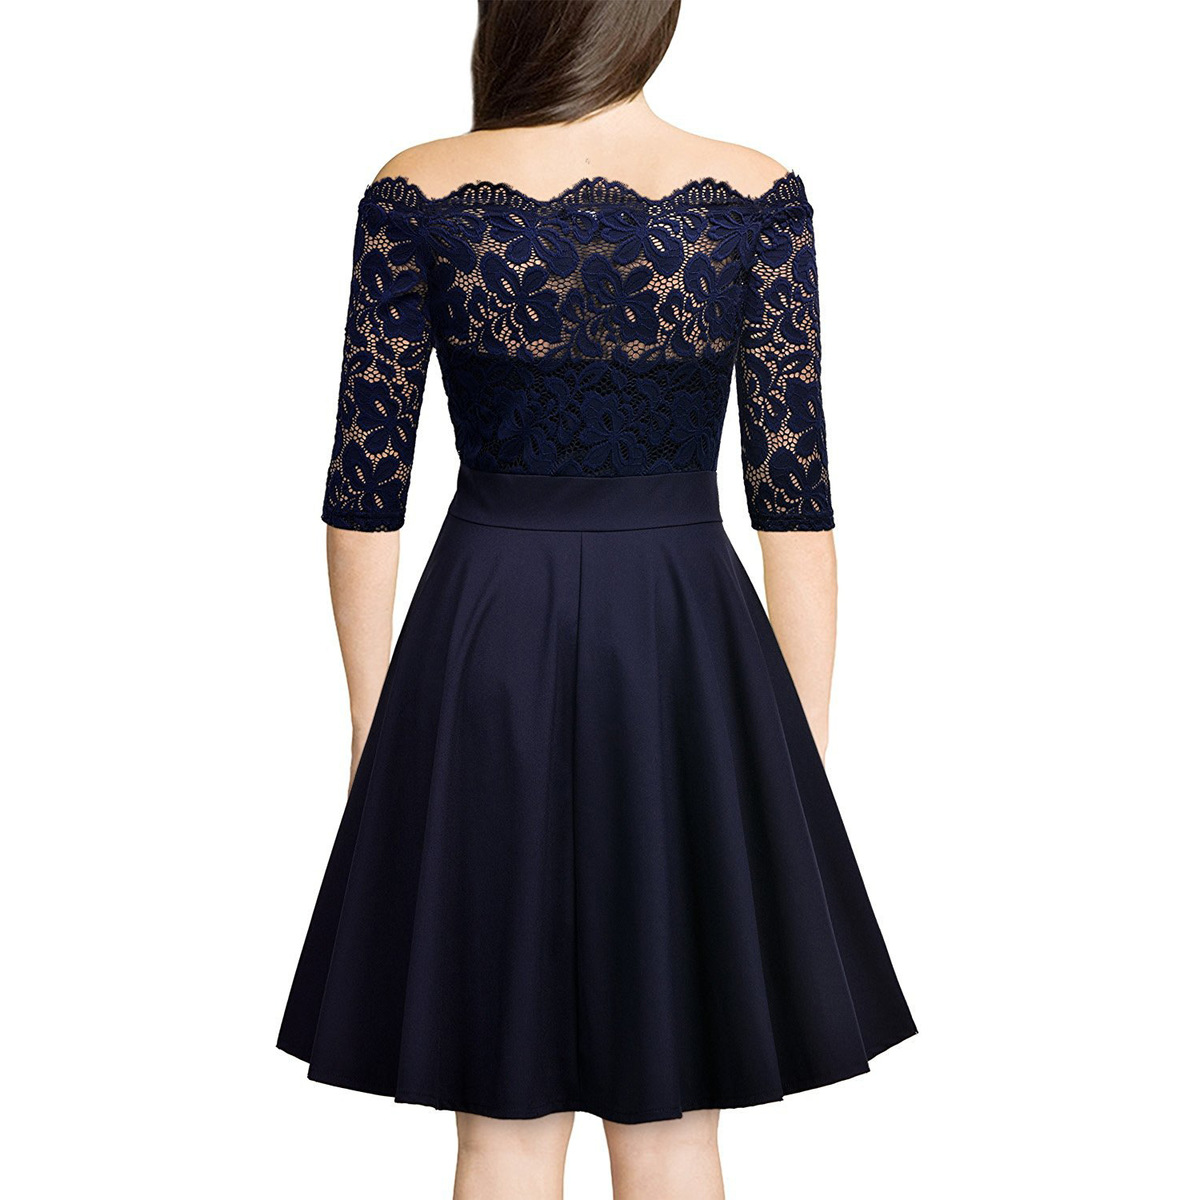 Vadim Europe Station High-quality Temperament Grace Competitive Products Sexy Lace One The Word Strapless Will Pendulum Dress